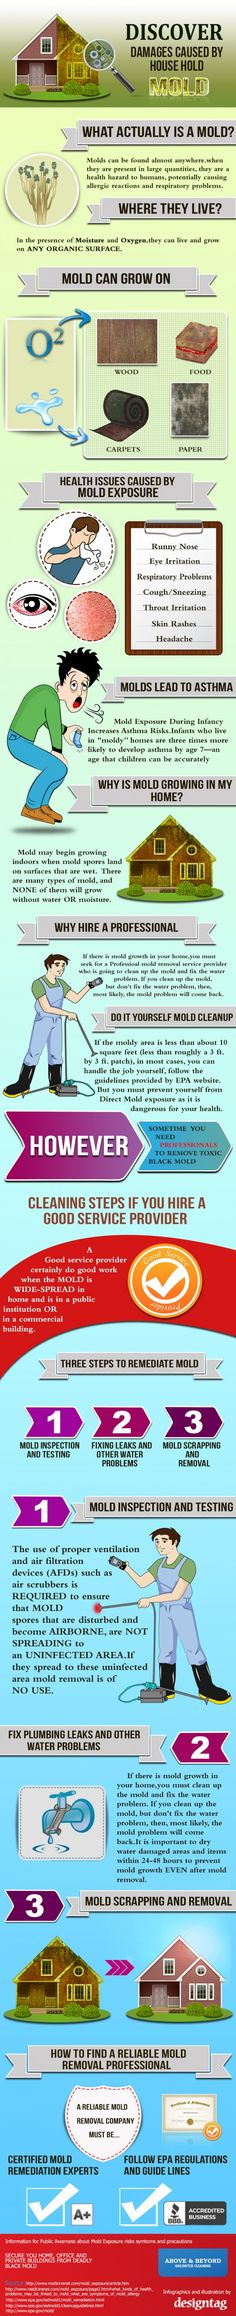 Discover Damages Caused by Household #Mold – #Infographic